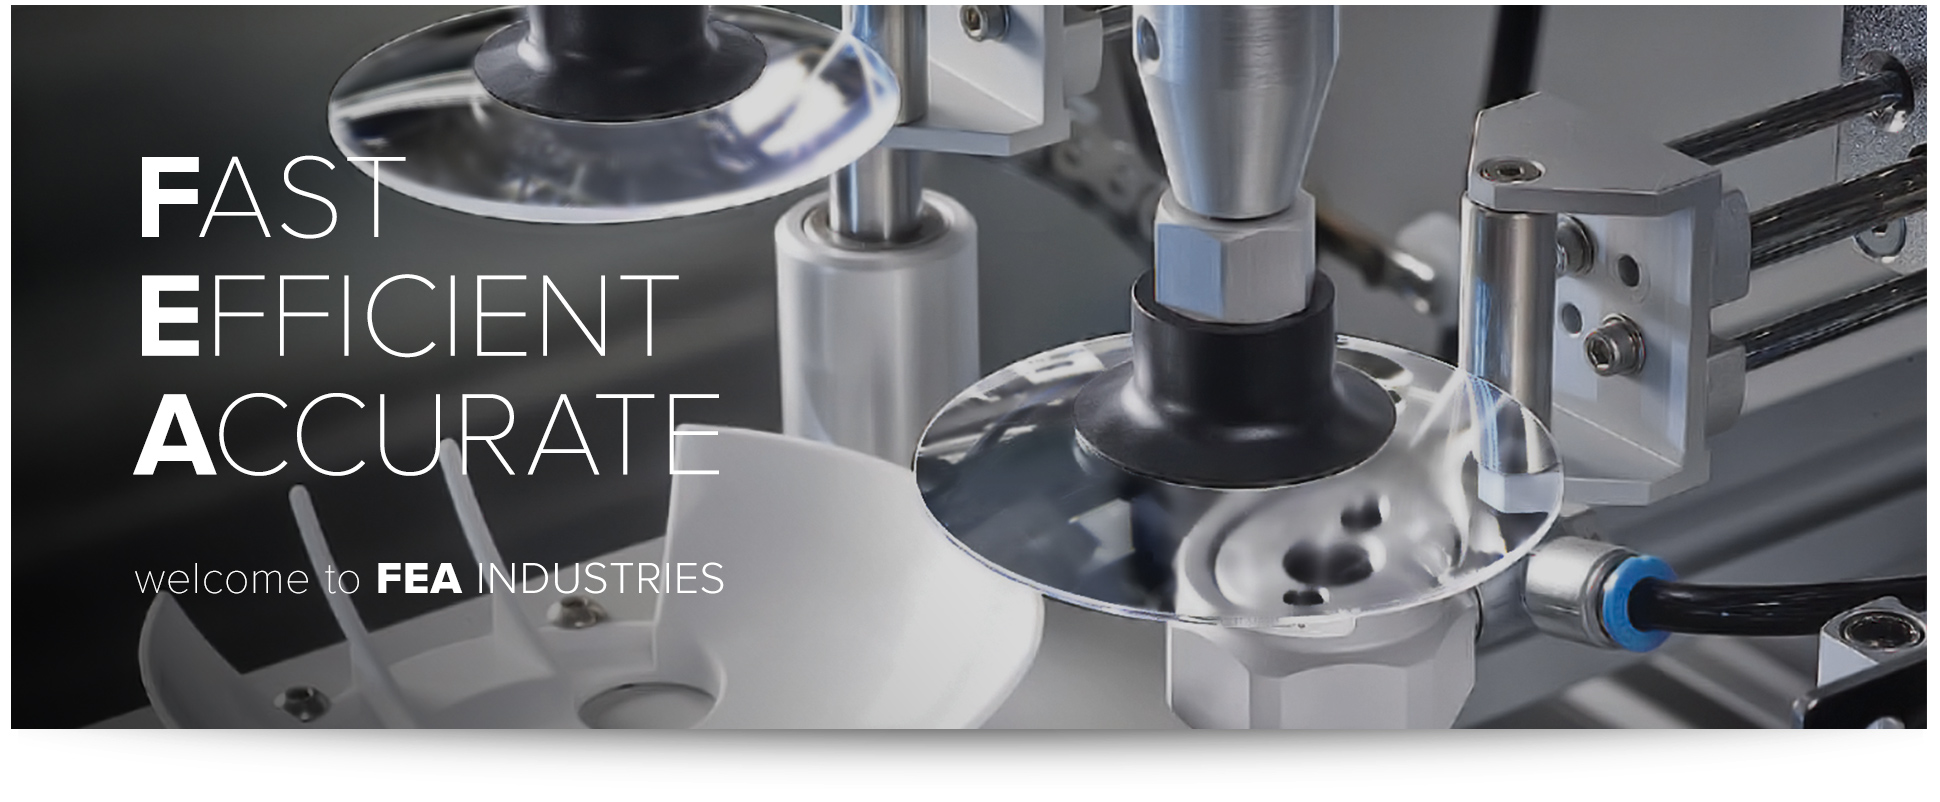 FEA Industries. Focused on you, focused on technology